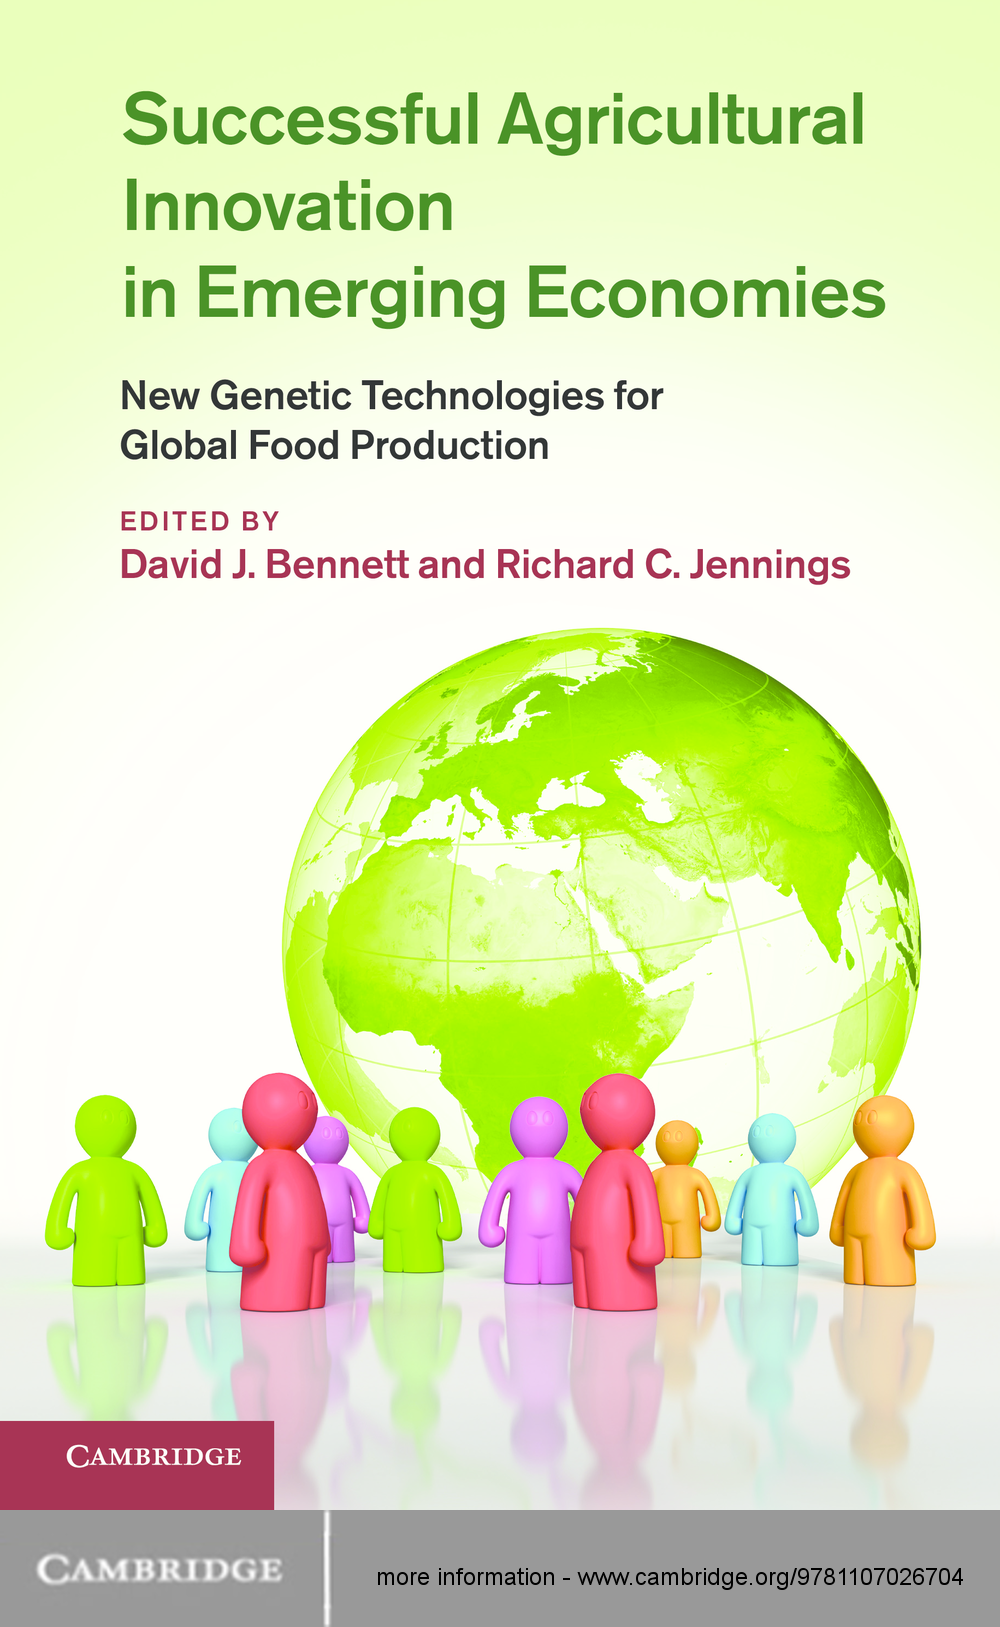 Successful Agricultural Innovation in Emerging Economies New Genetic Technologies for Global Food Production